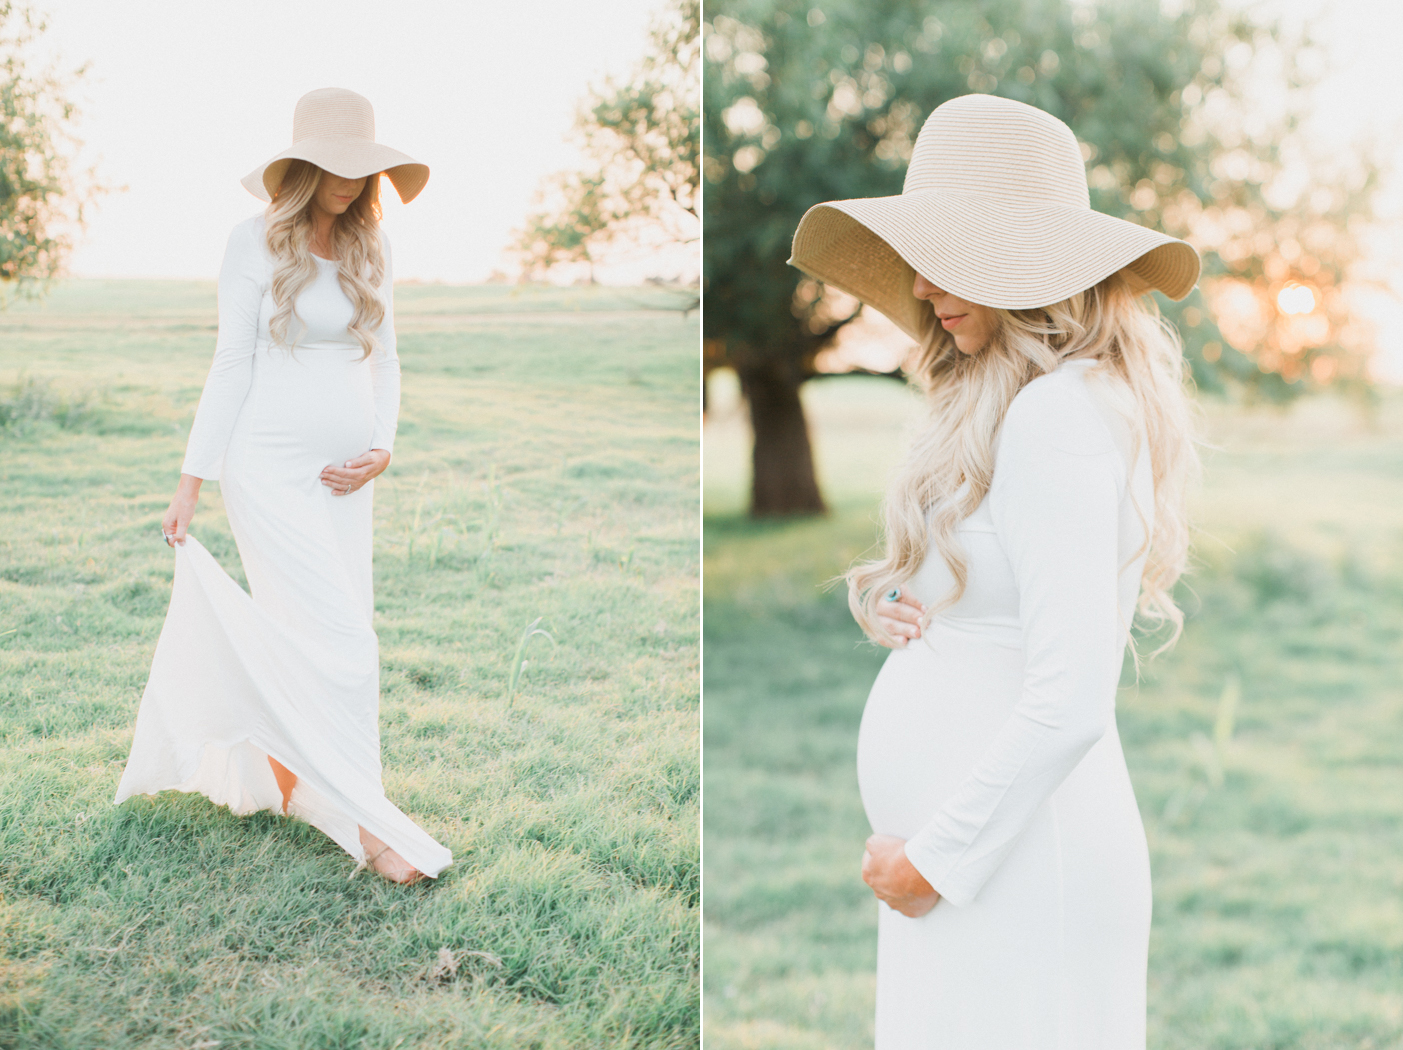 Rachel White Maternity Session-6 side by side.jpg